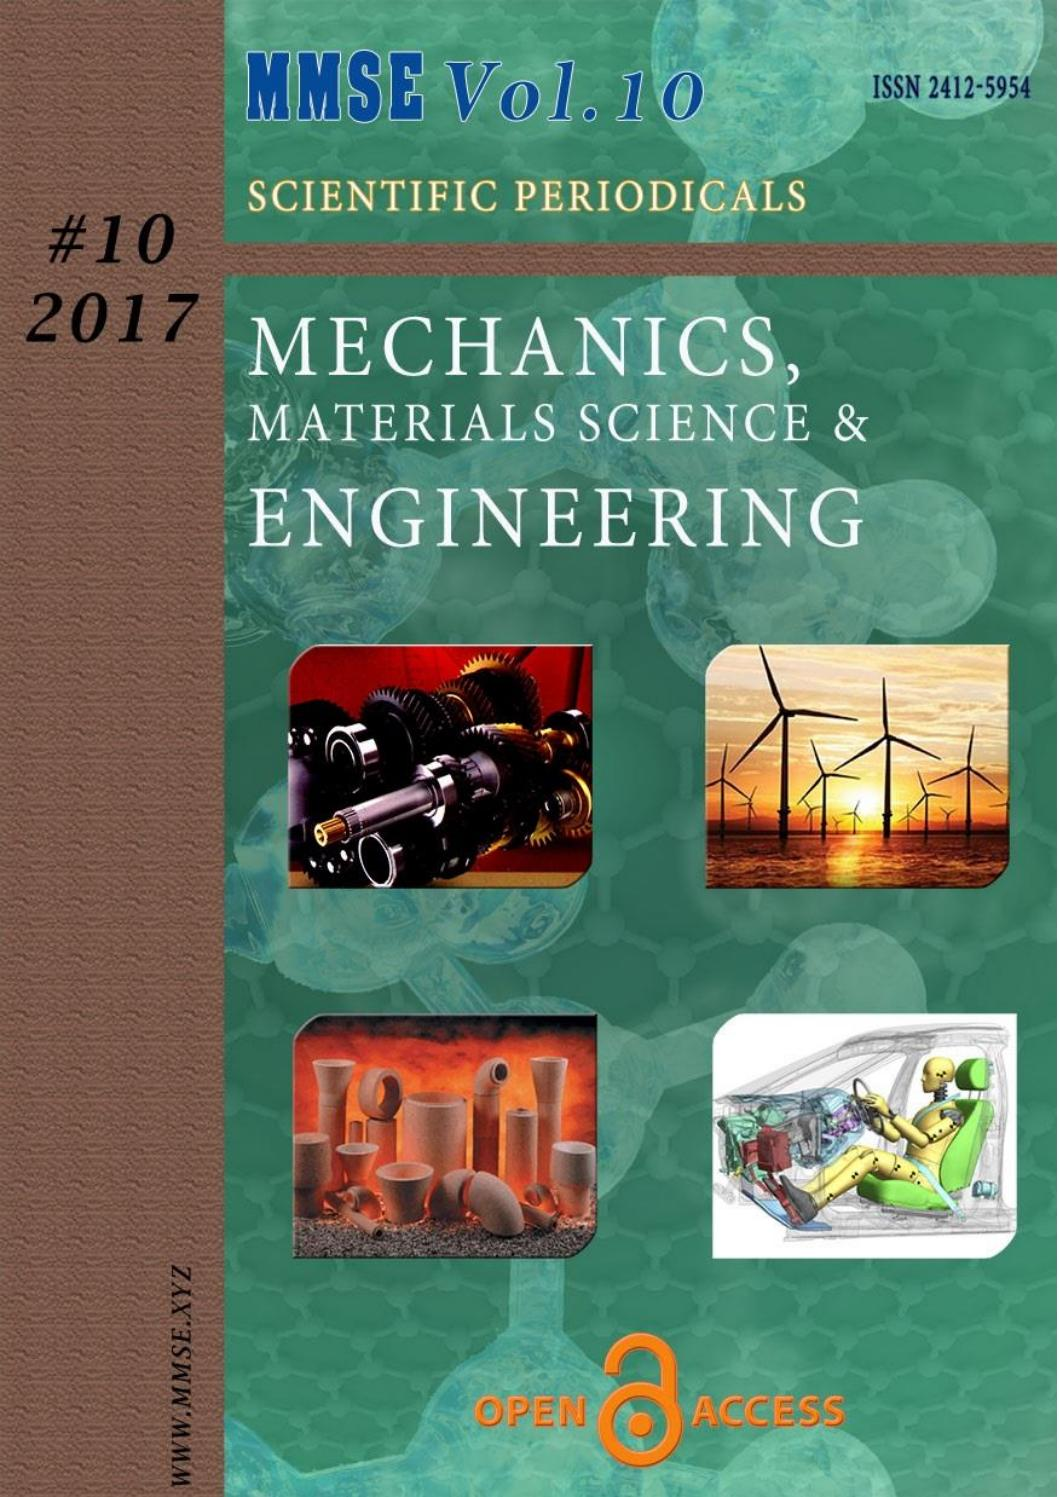 Mechanics, Materials Science & Engineering by MMSE Journal